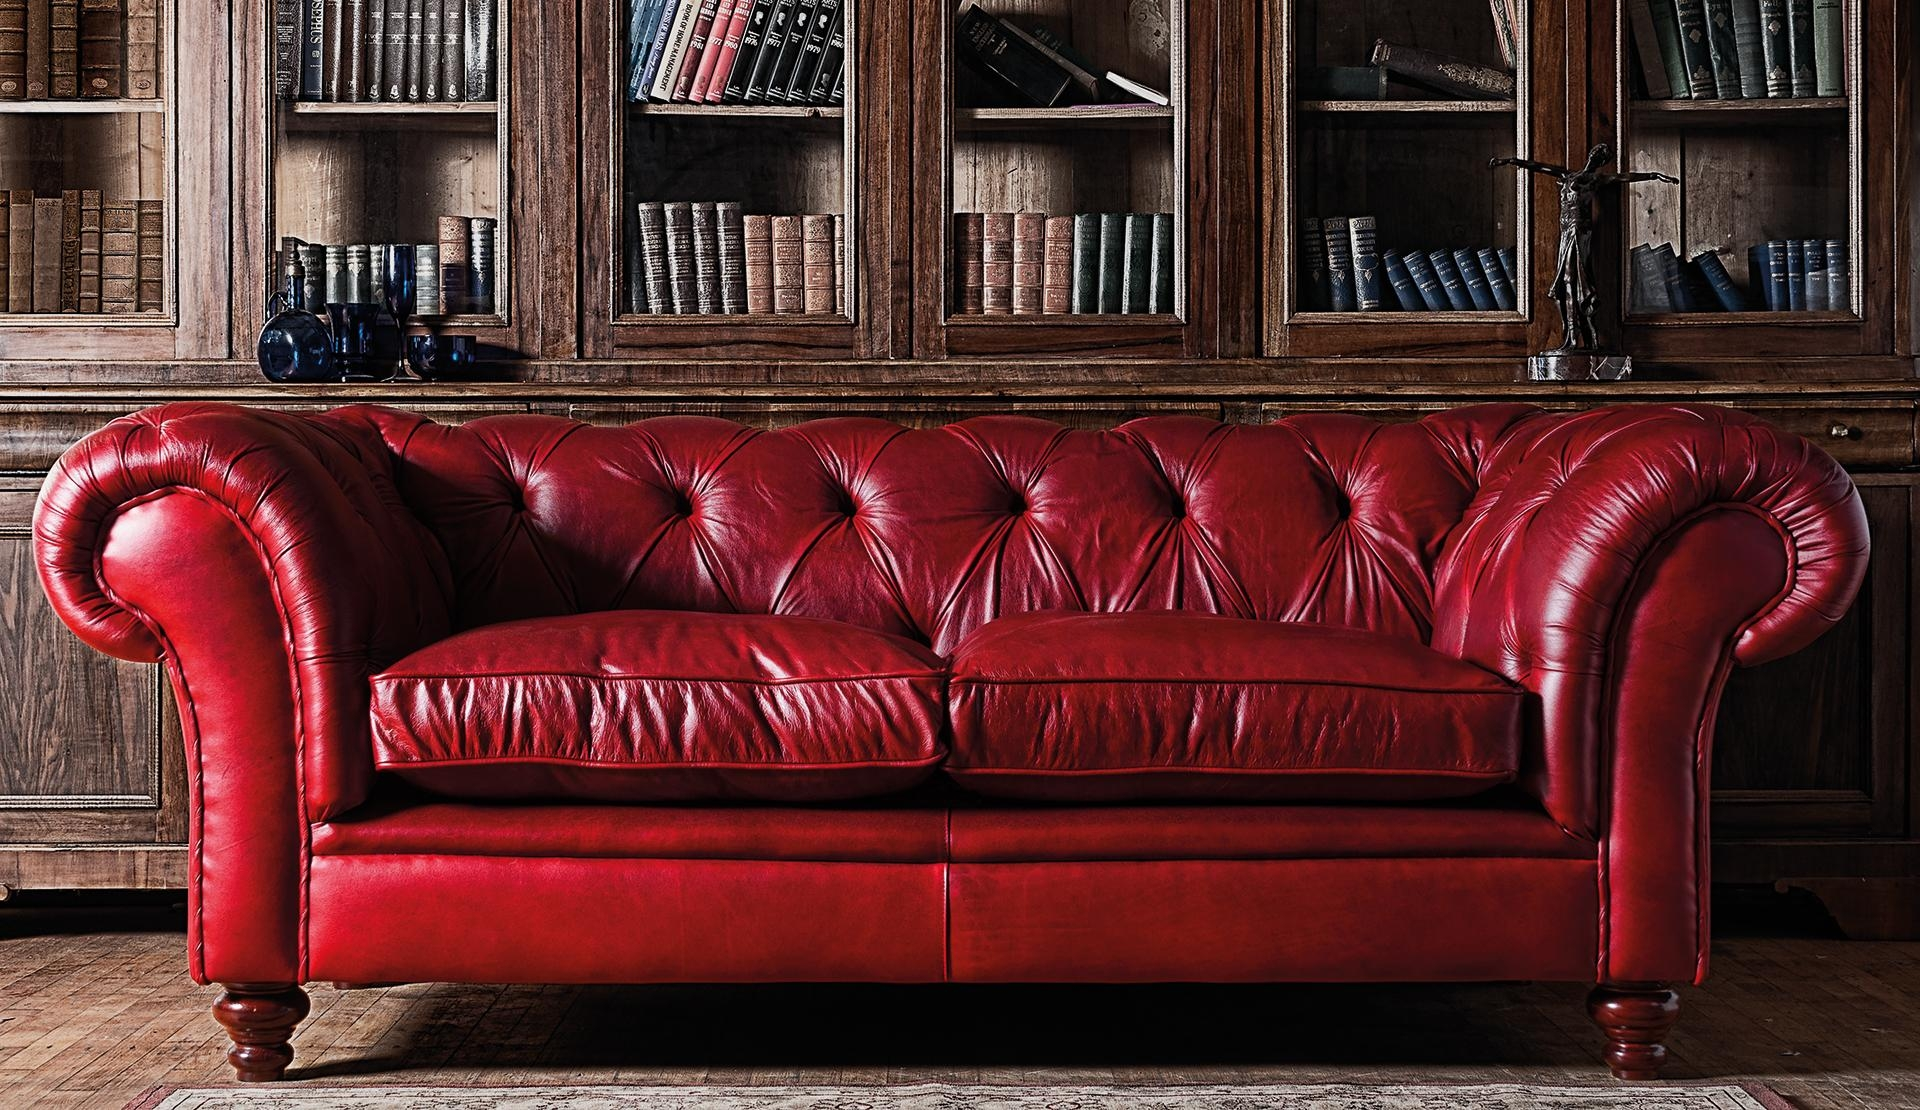 20 Best Collection Of Red Leather Chesterfield Chairs